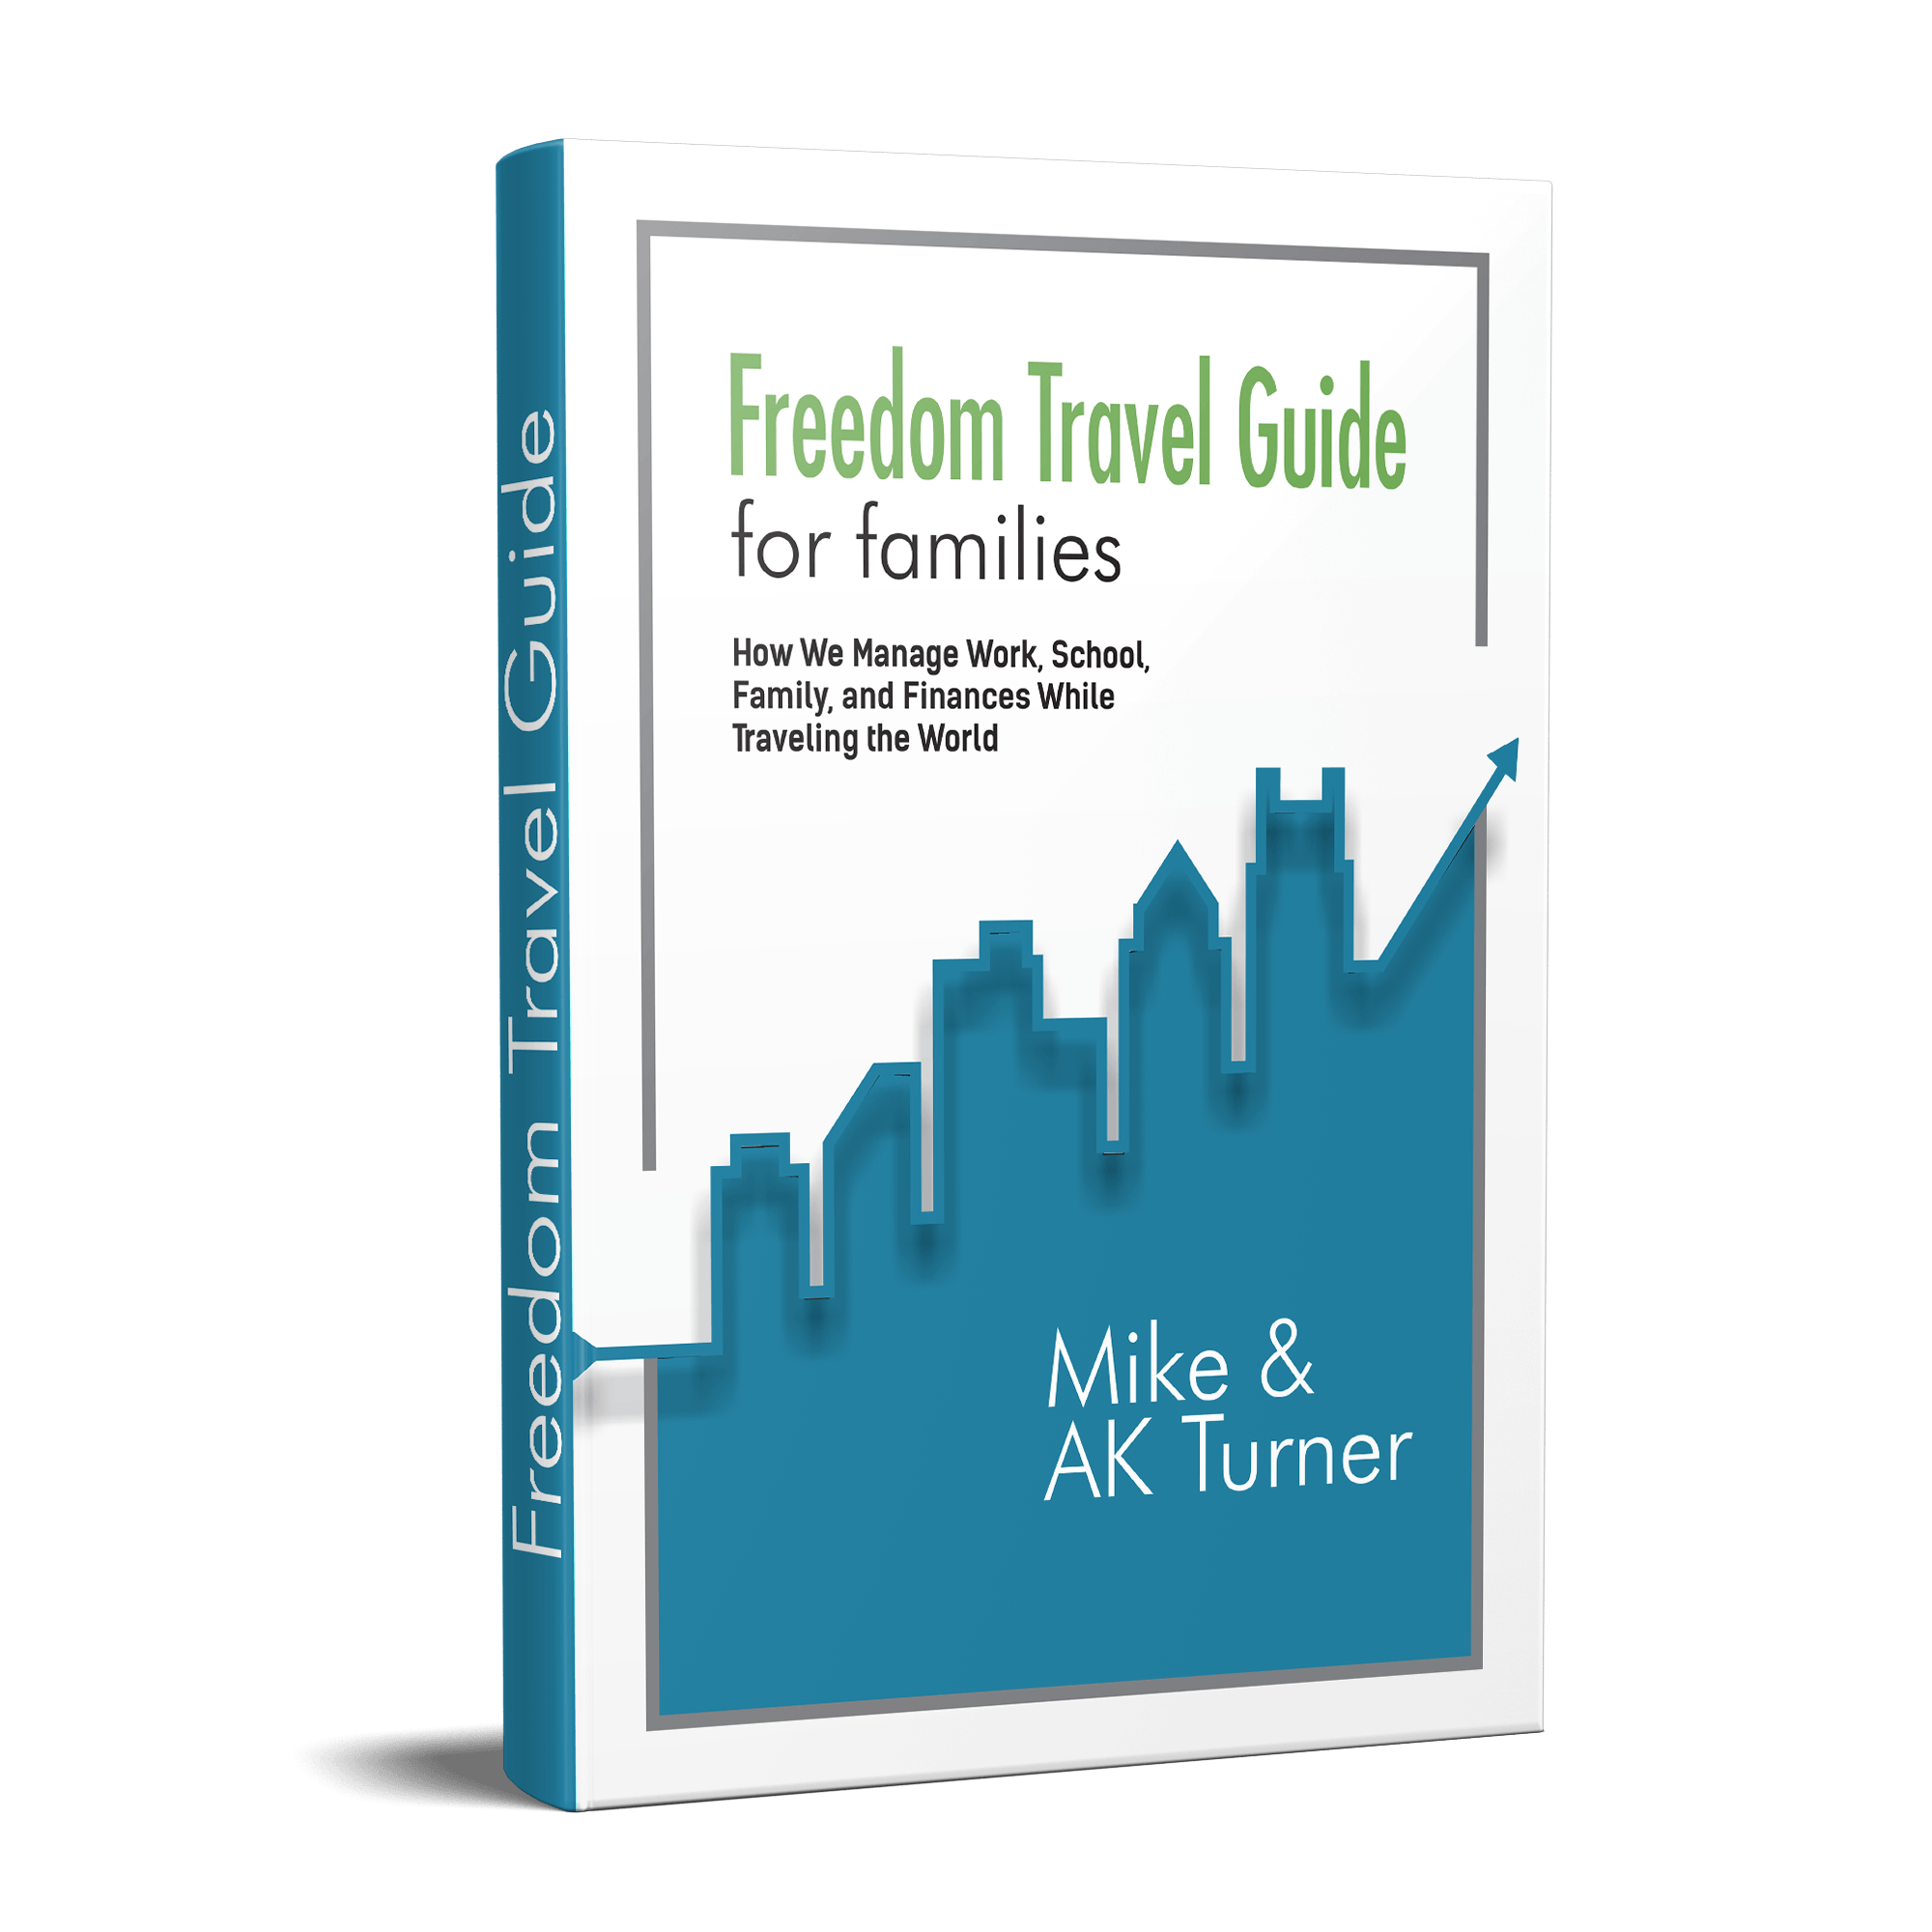 Freedom Travel Guide for Families